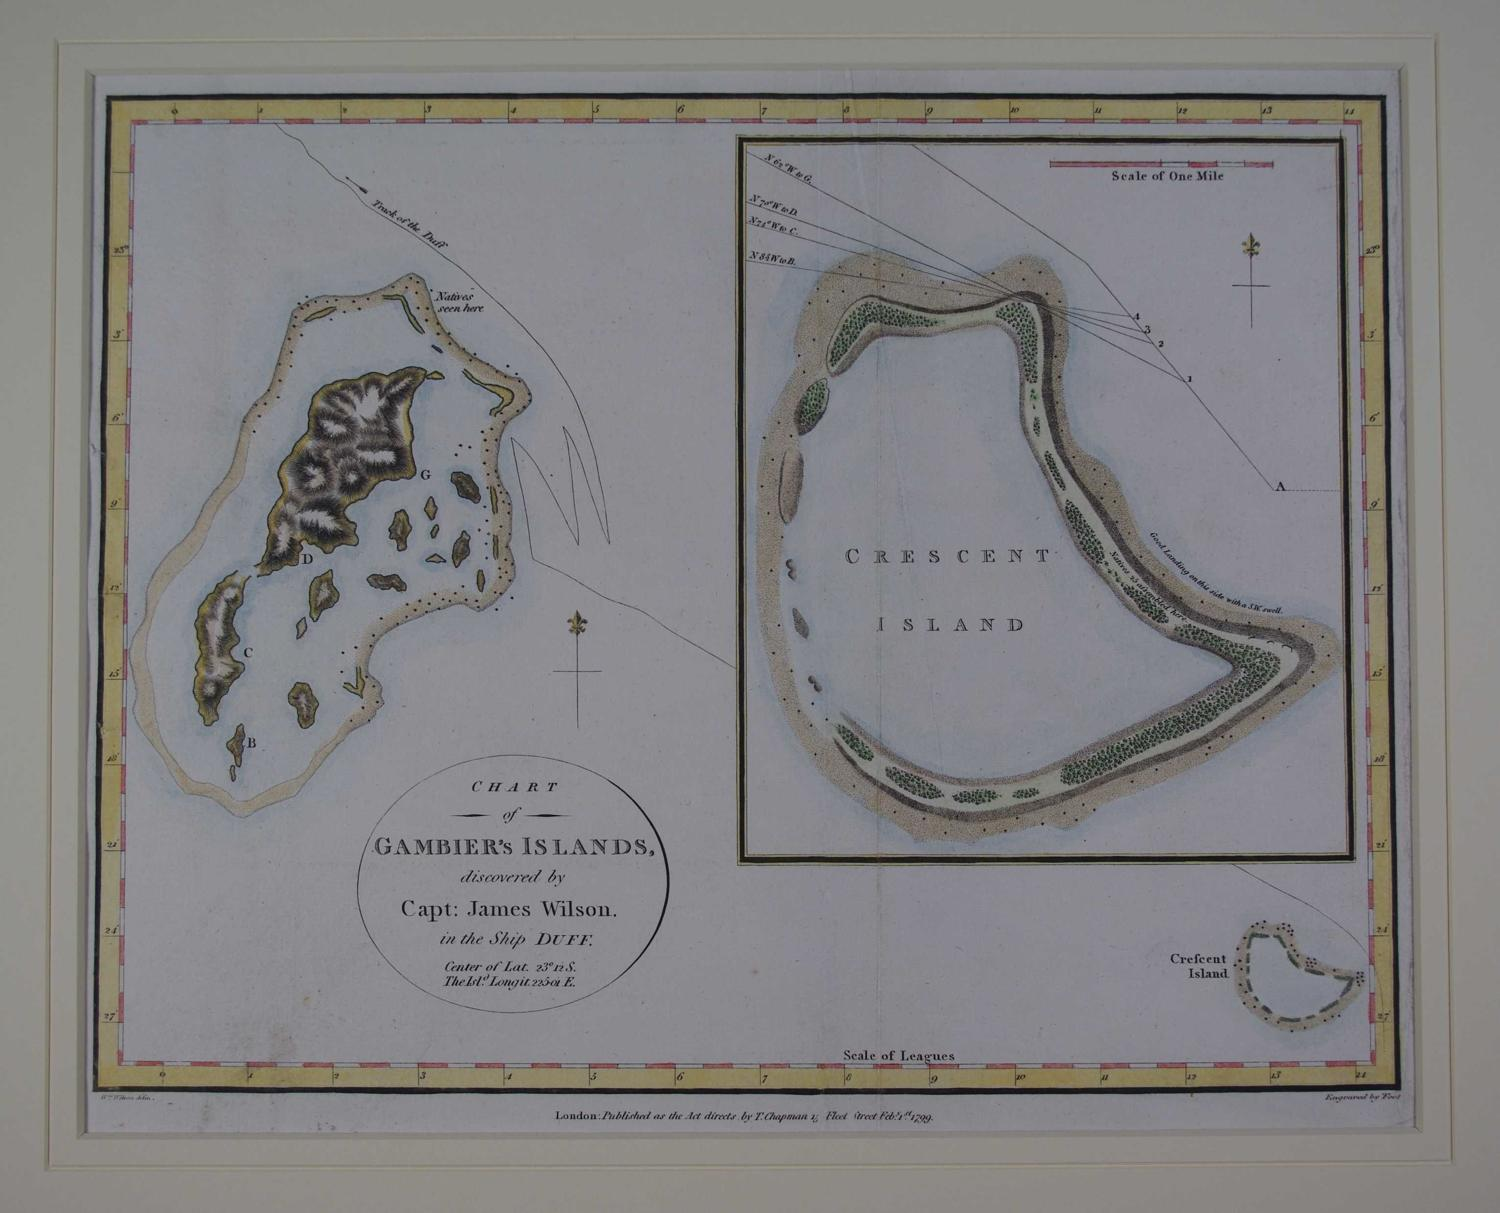 Chart of Gambier's Islands, discovered by Capt: James Wilson. in the S